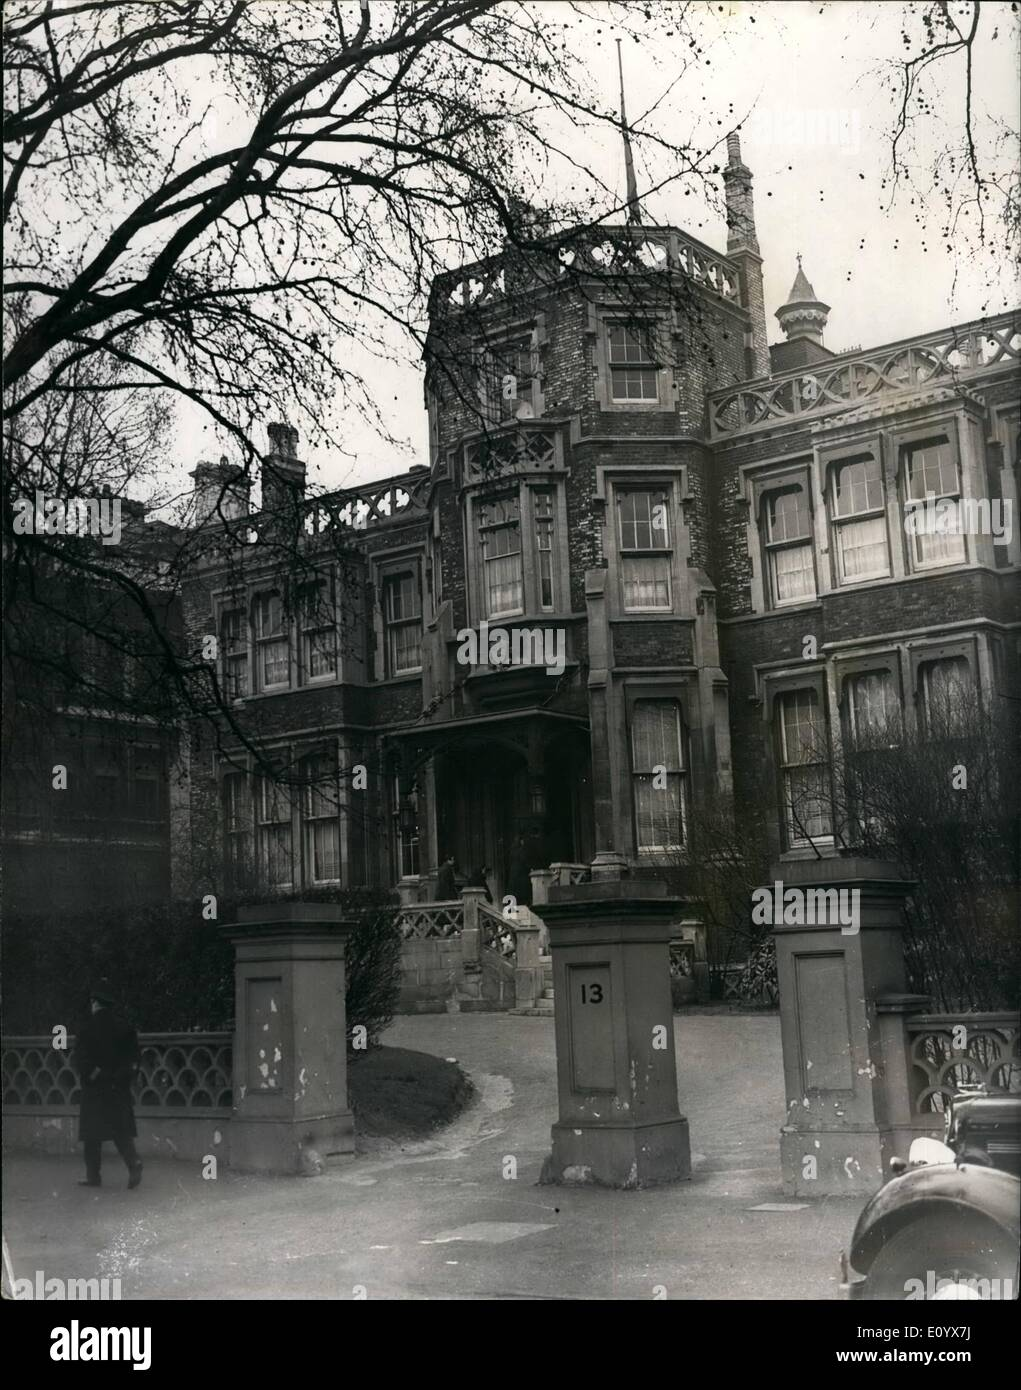 Sep. 09, 1971 - Britain expels 105 Russians after KGB defector exposes Soviet spy net in London: Britain expelled 90 Russian diplomats and officials yesterday for spying, forbade the return of 15 others temporarily out of the country and put a limit on the numbers of officials the Soviet Government may station in London. The drastic came after the defection of a senior agent of the KGB intelligence series earlier this month, and his disclosures series earlier this month, and his disclosures of plans to infiltrate saboteurs and more spies into Britain. The agent has not been named - Stock Image